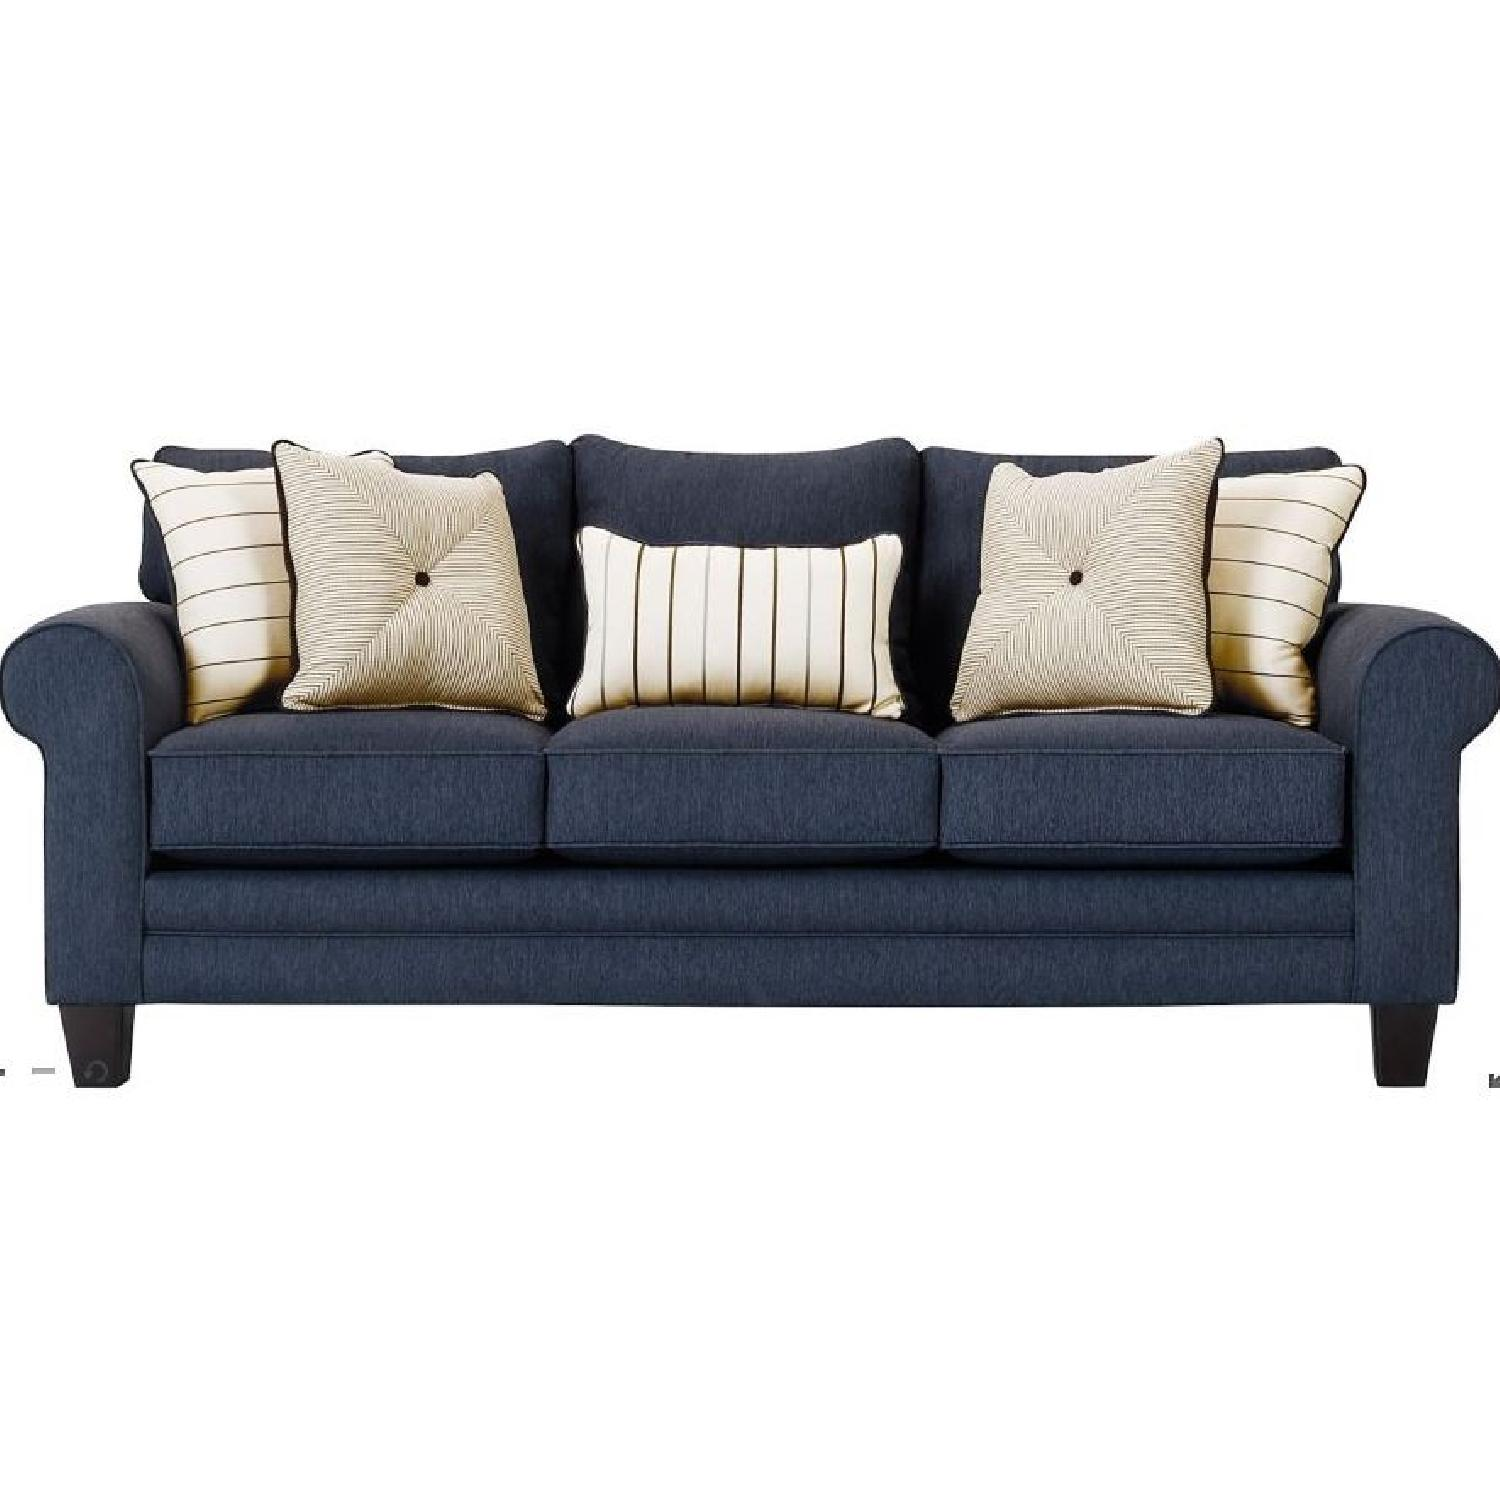 Raymour & Flanigan McKinley Sofa in Navy